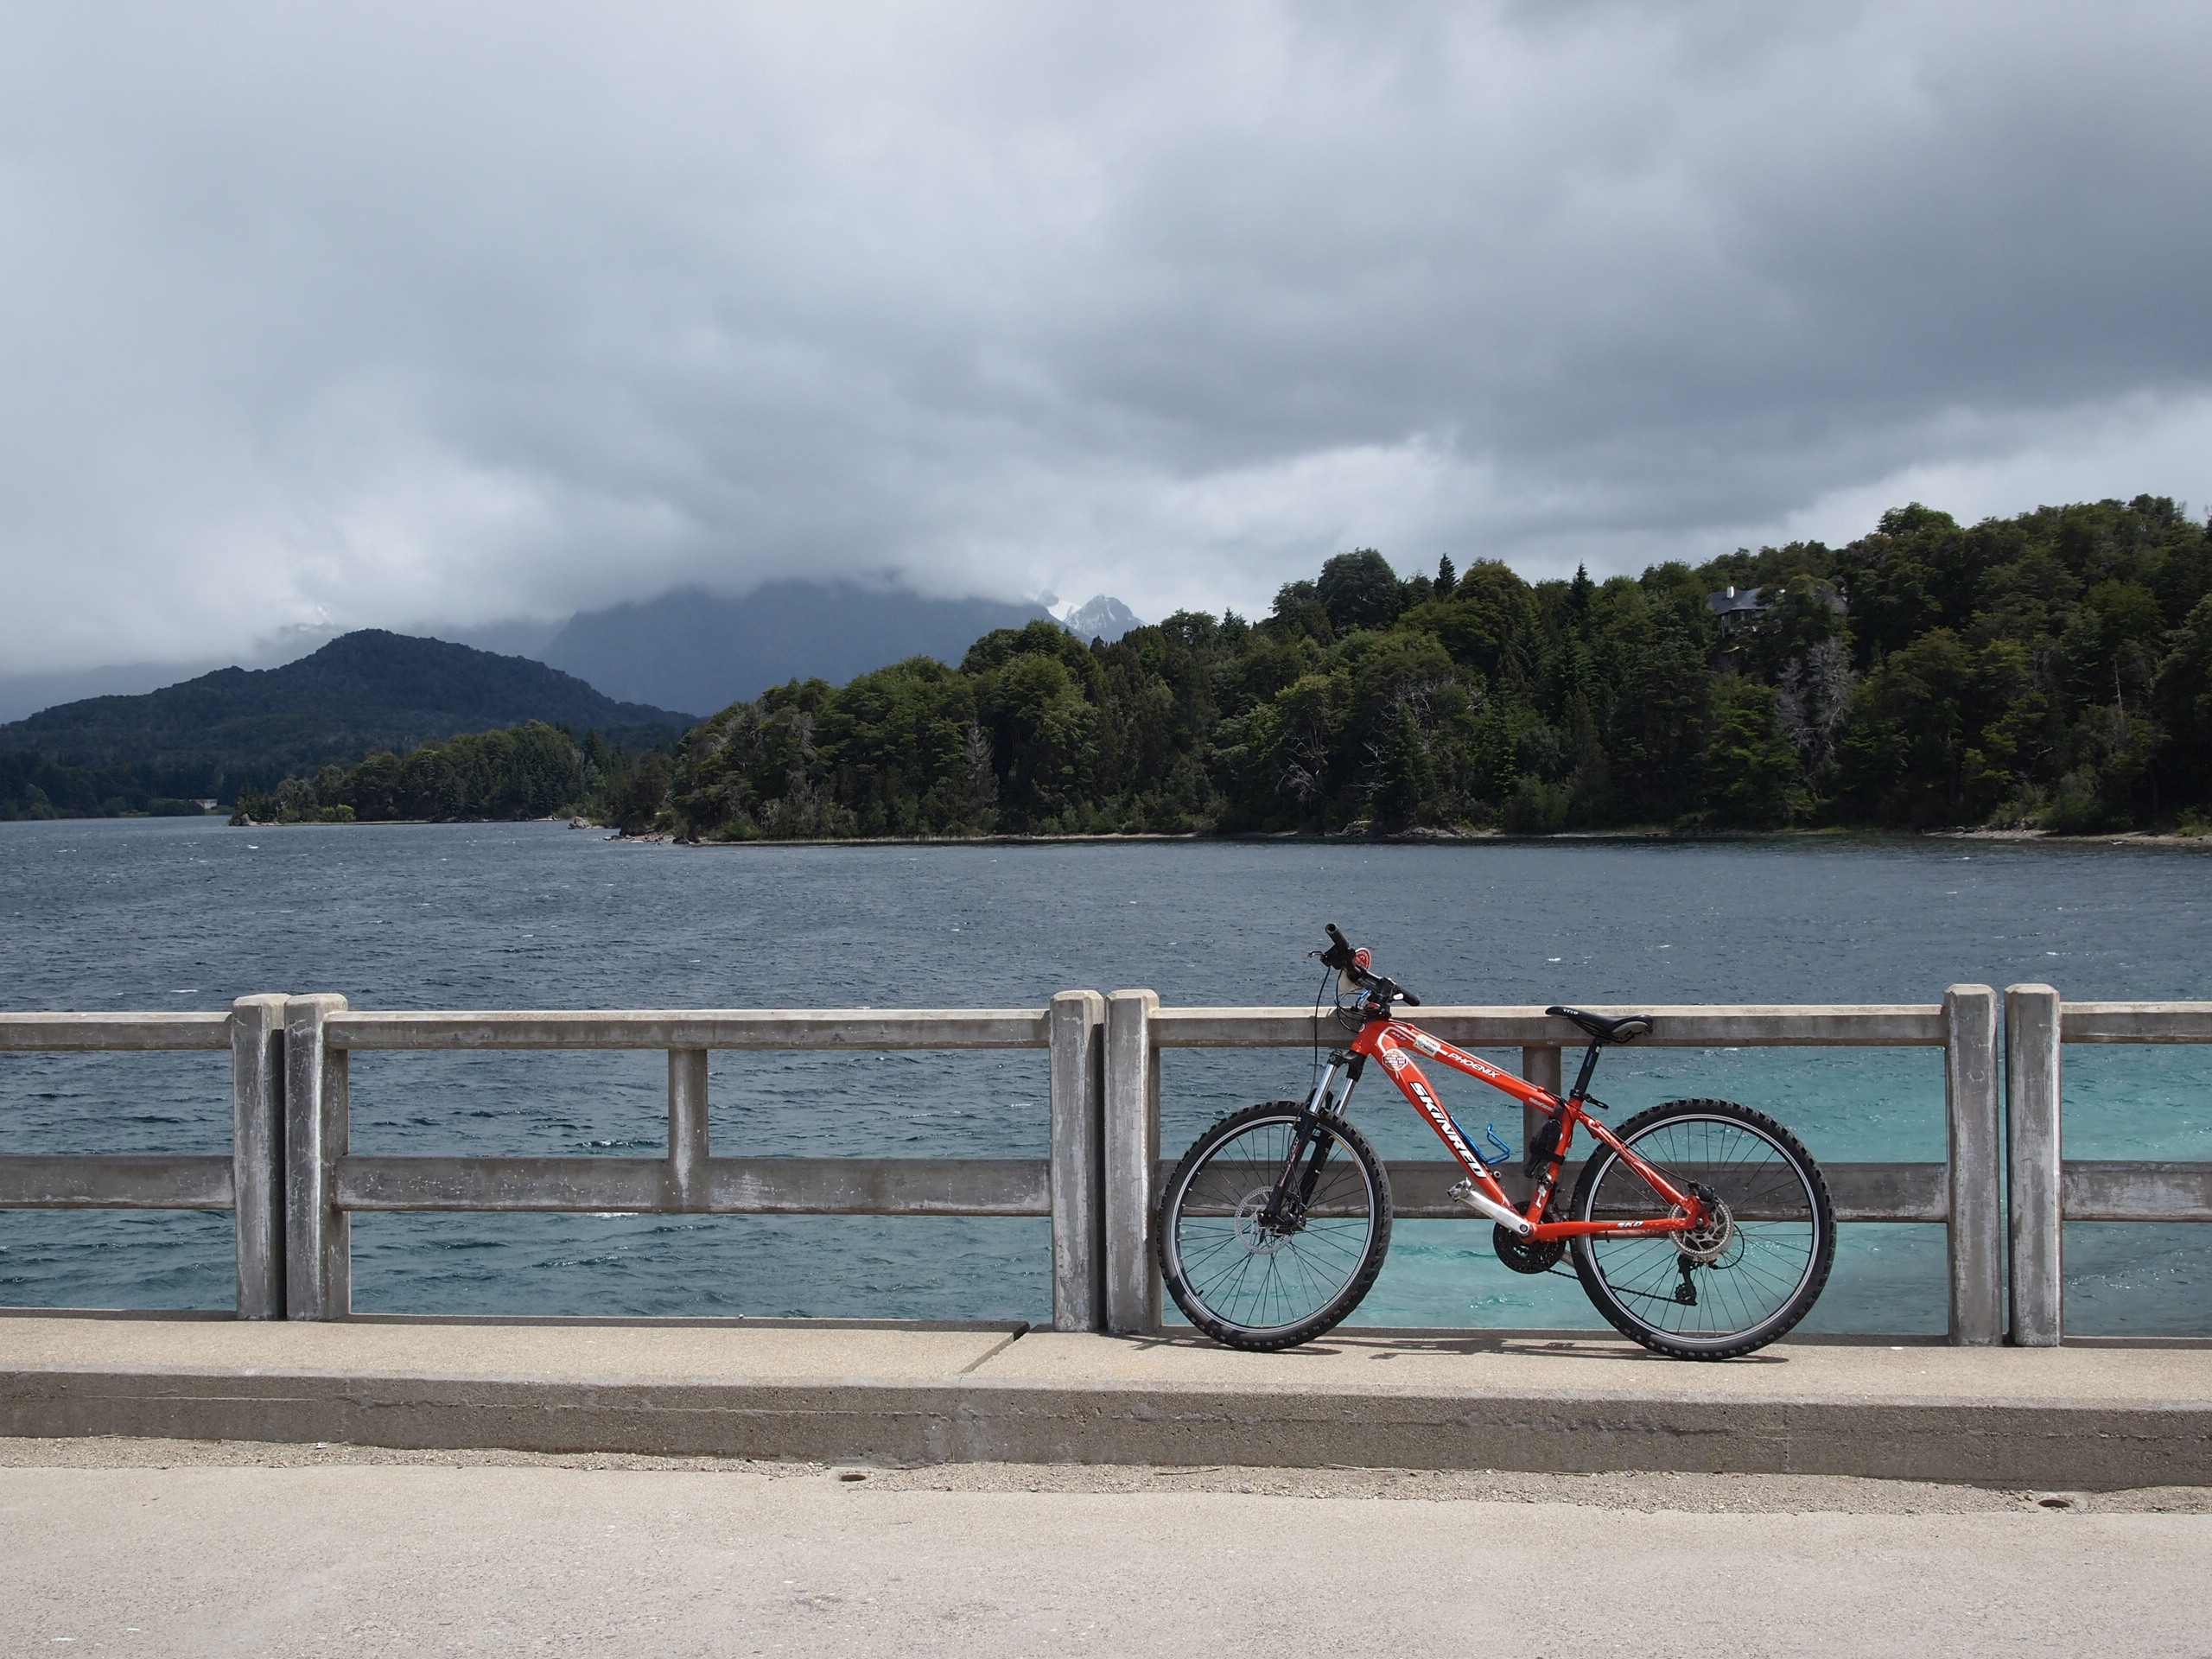 One of very few photos from my 27km bike ride through Bariloche.